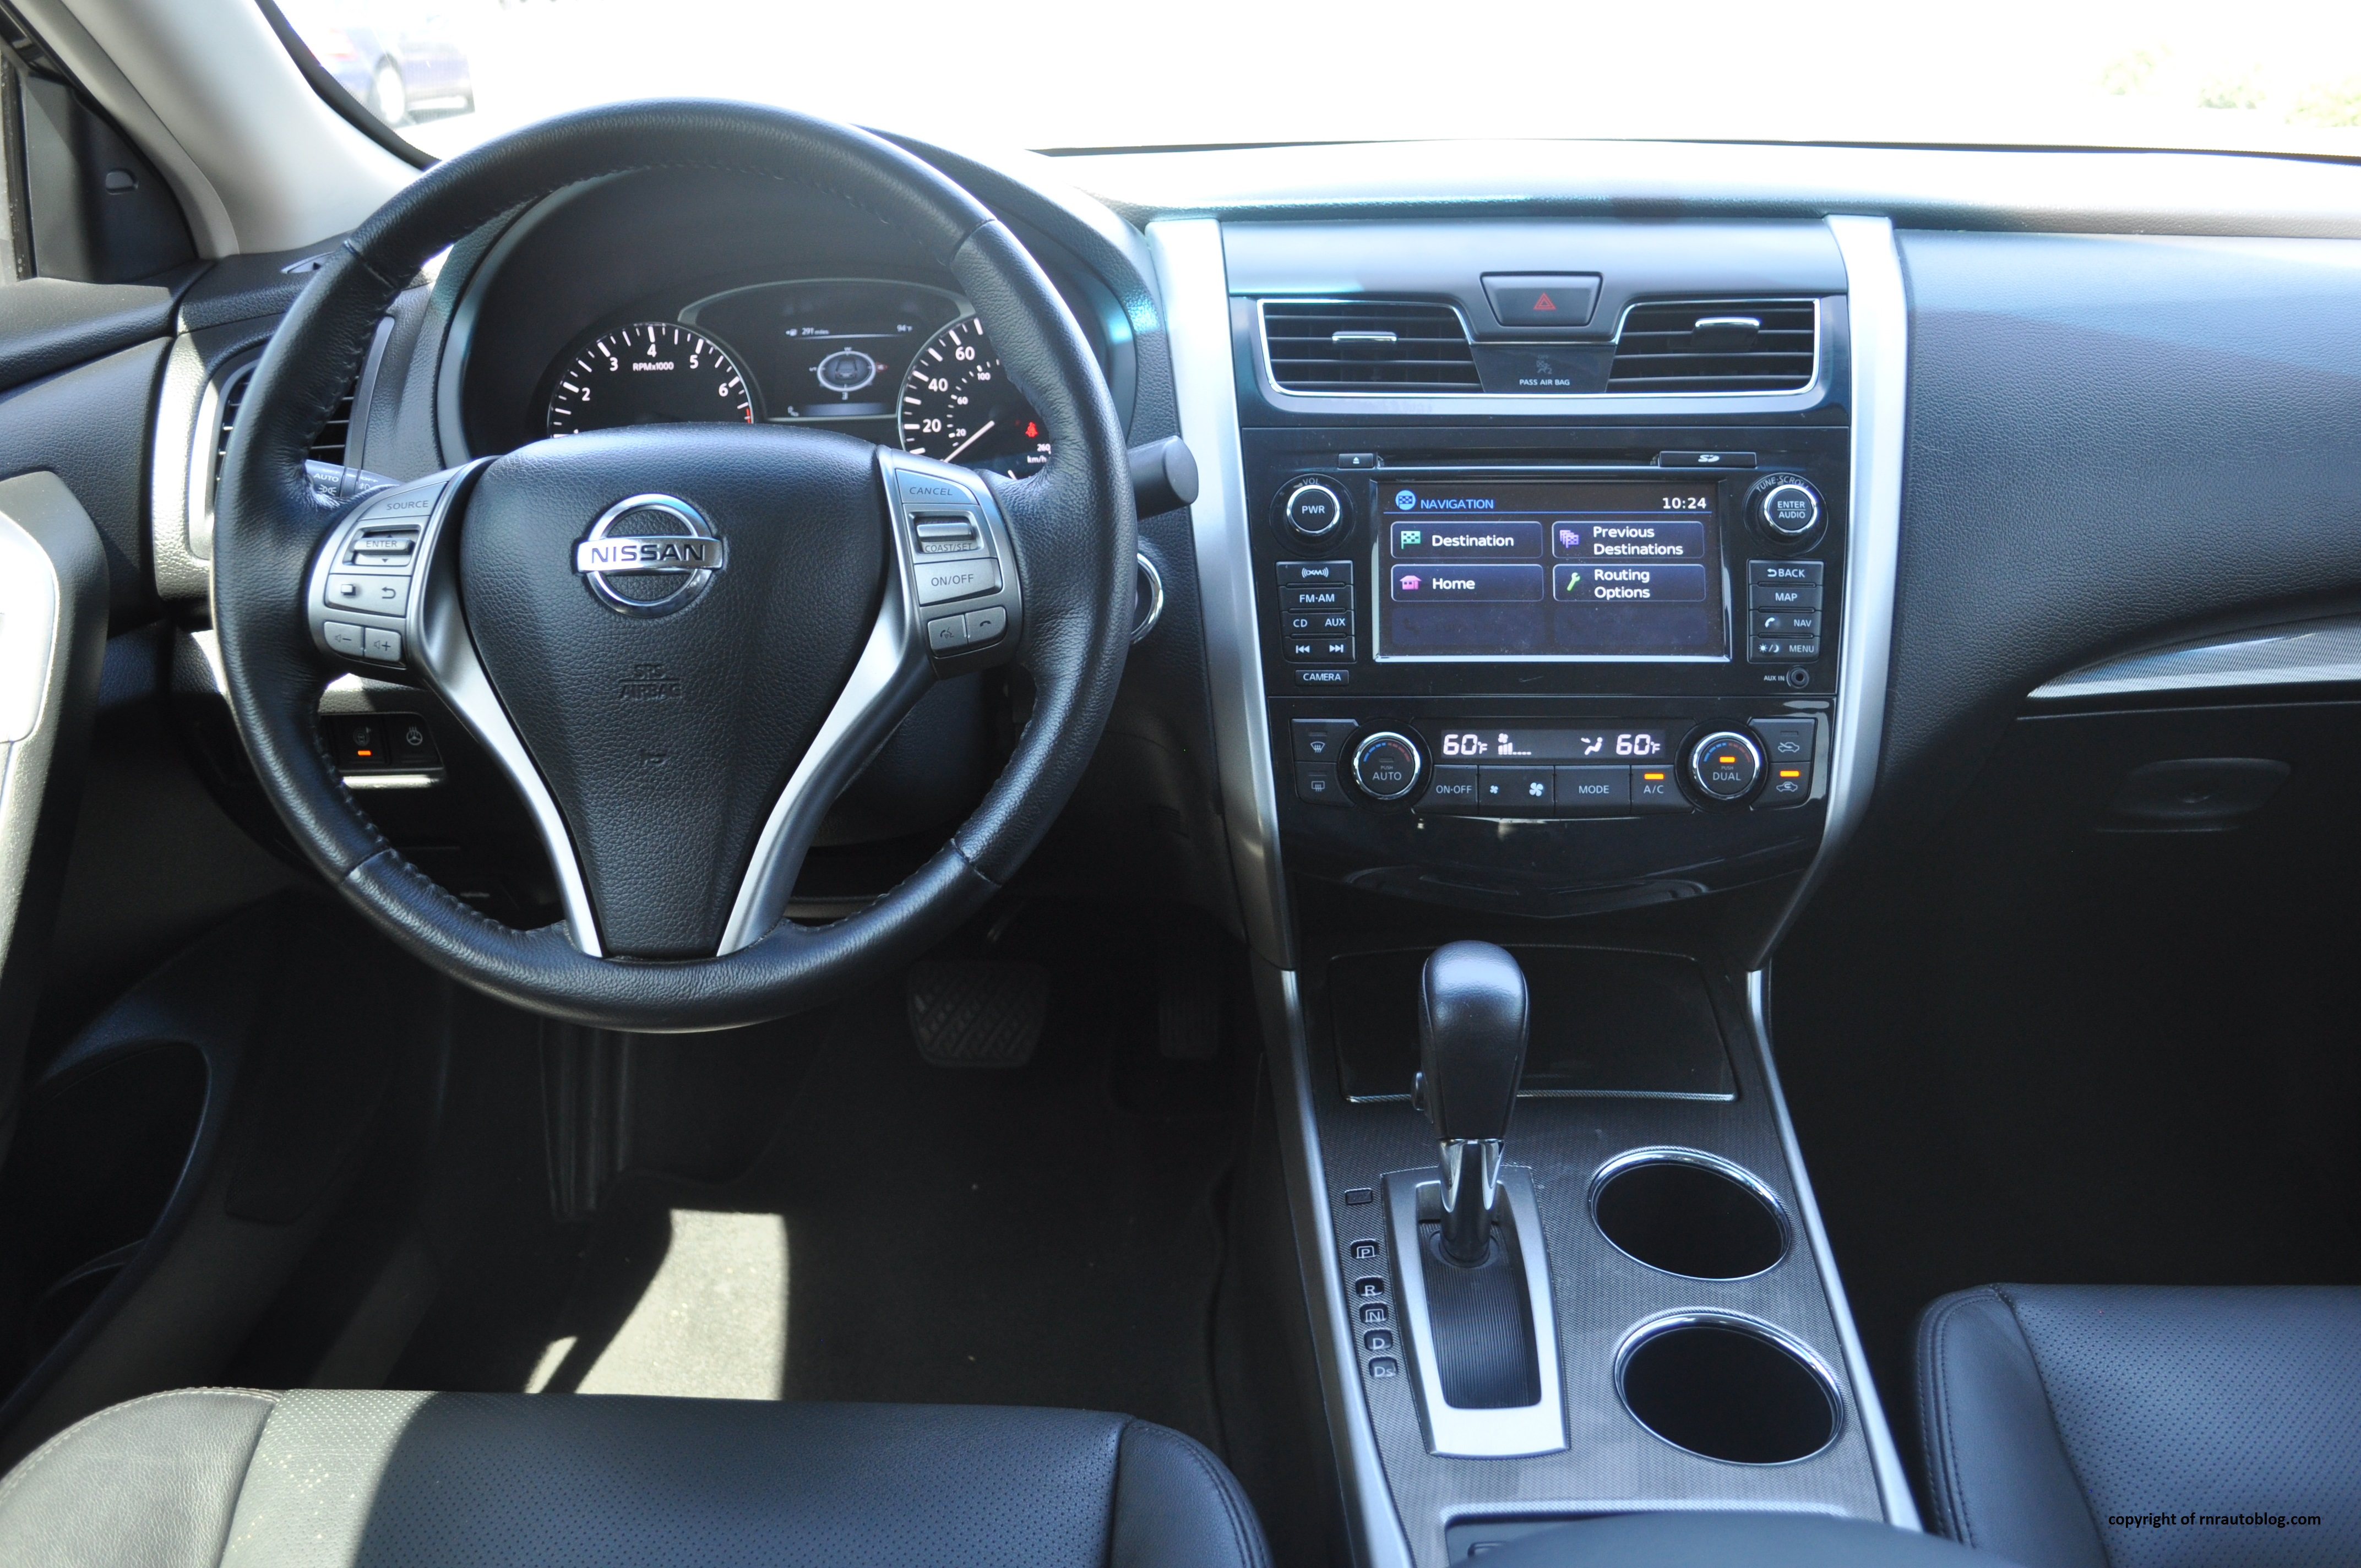 2013 Nissan Altima Sl Review Rnr Automotive Blog